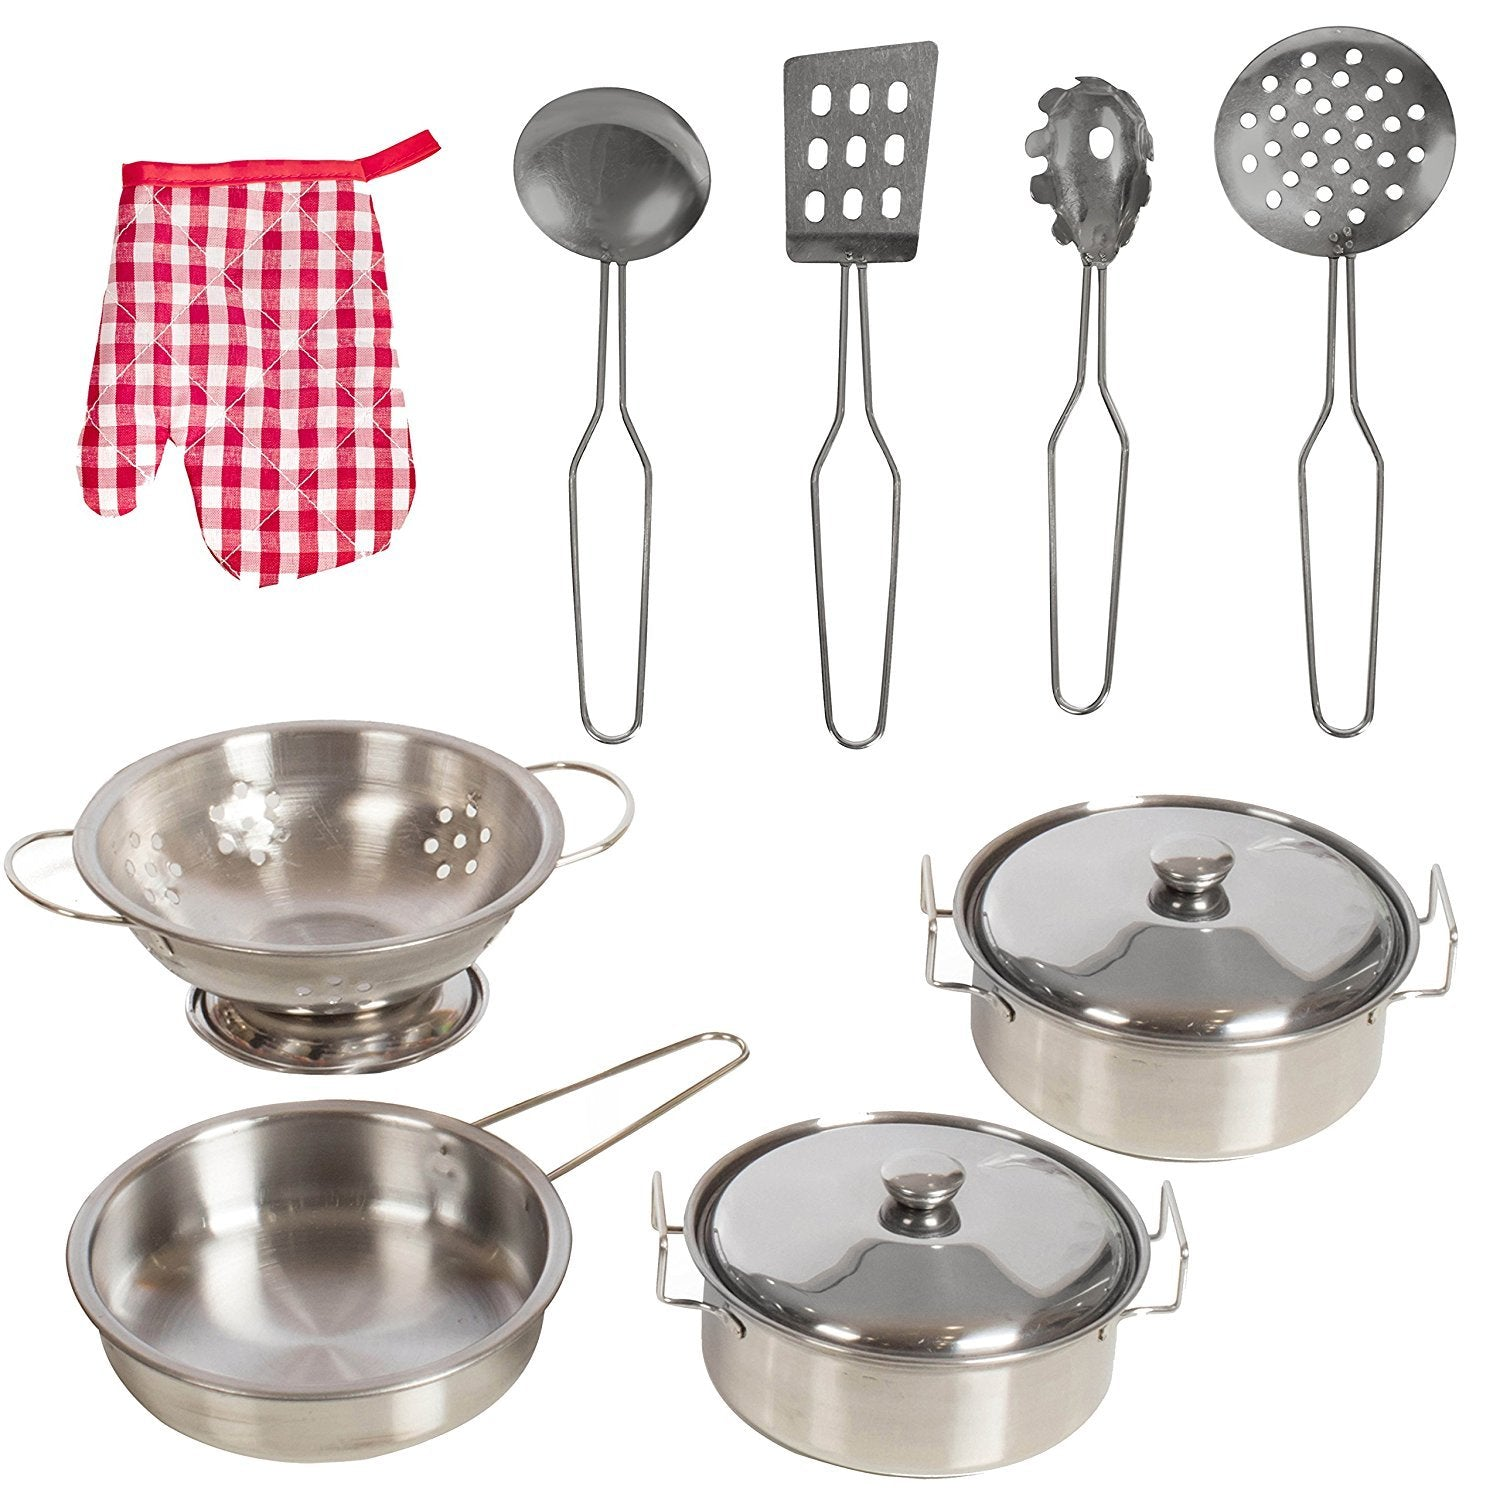 IQ Toys 11 Piece Pots and Utensil Set for Pretend Play